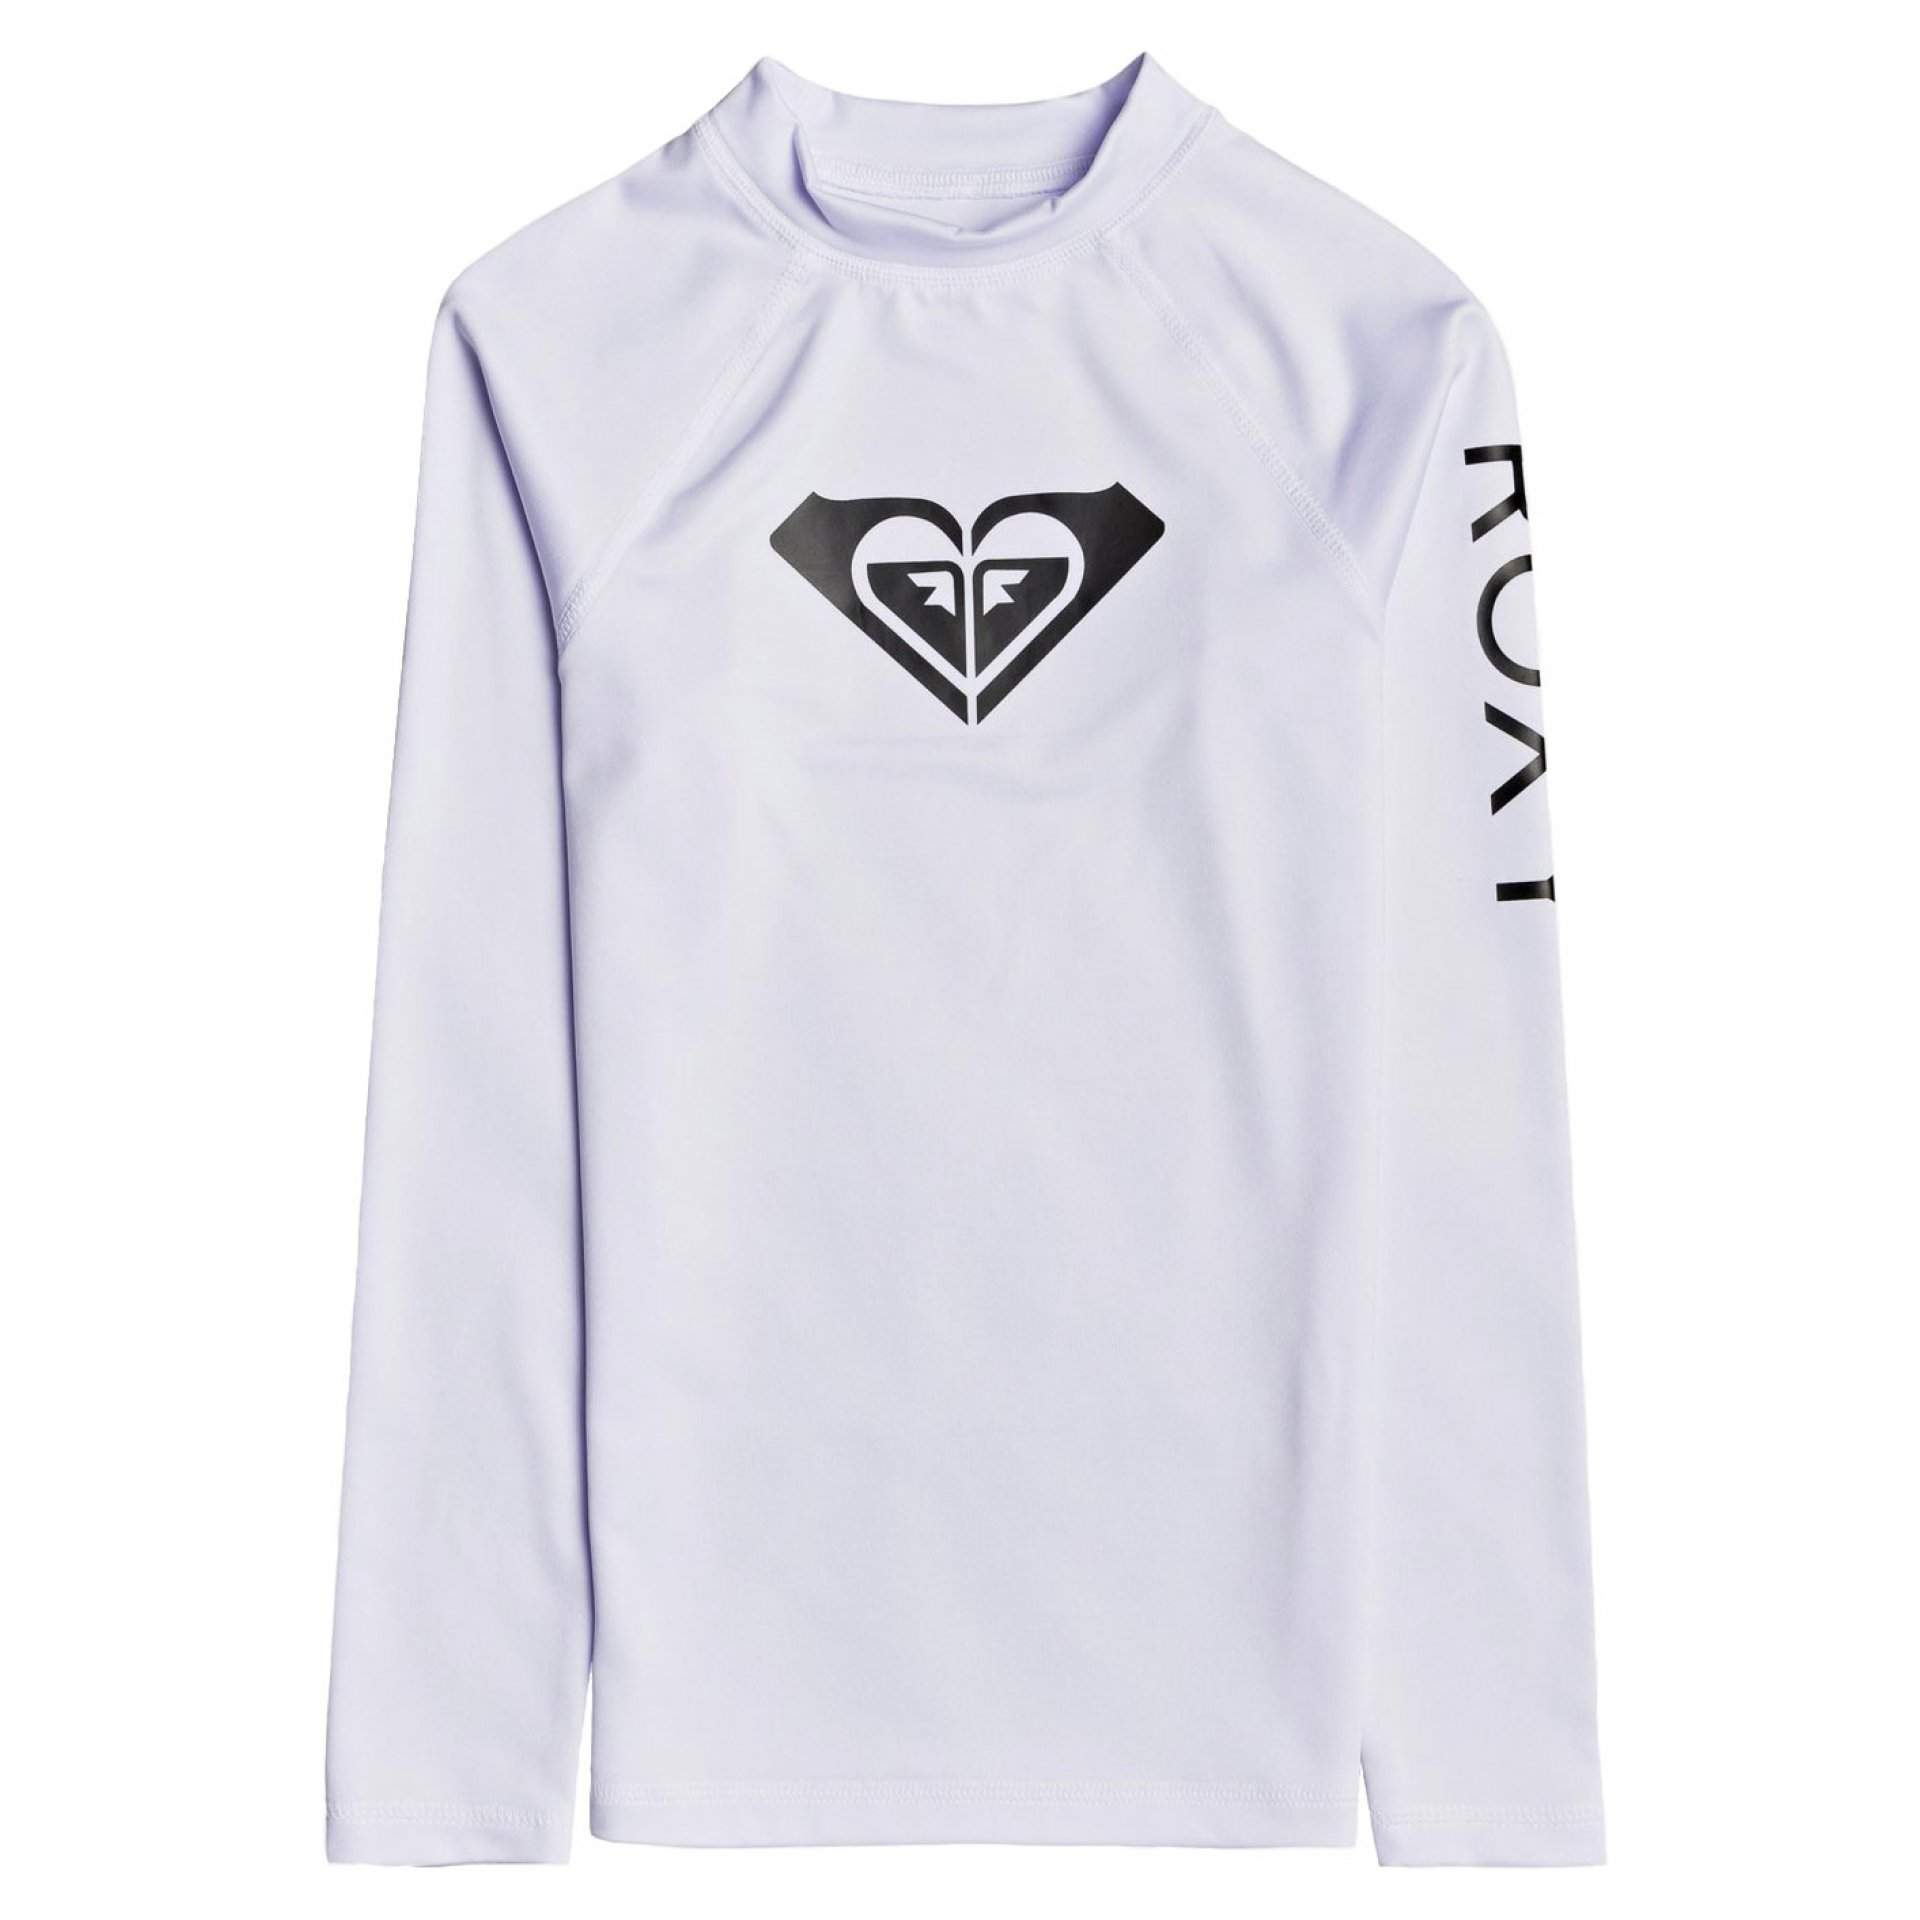 LYCRA ROXY GIRLS 8-16 WHOLE HEARTED LS ERGWR03205 WBB1